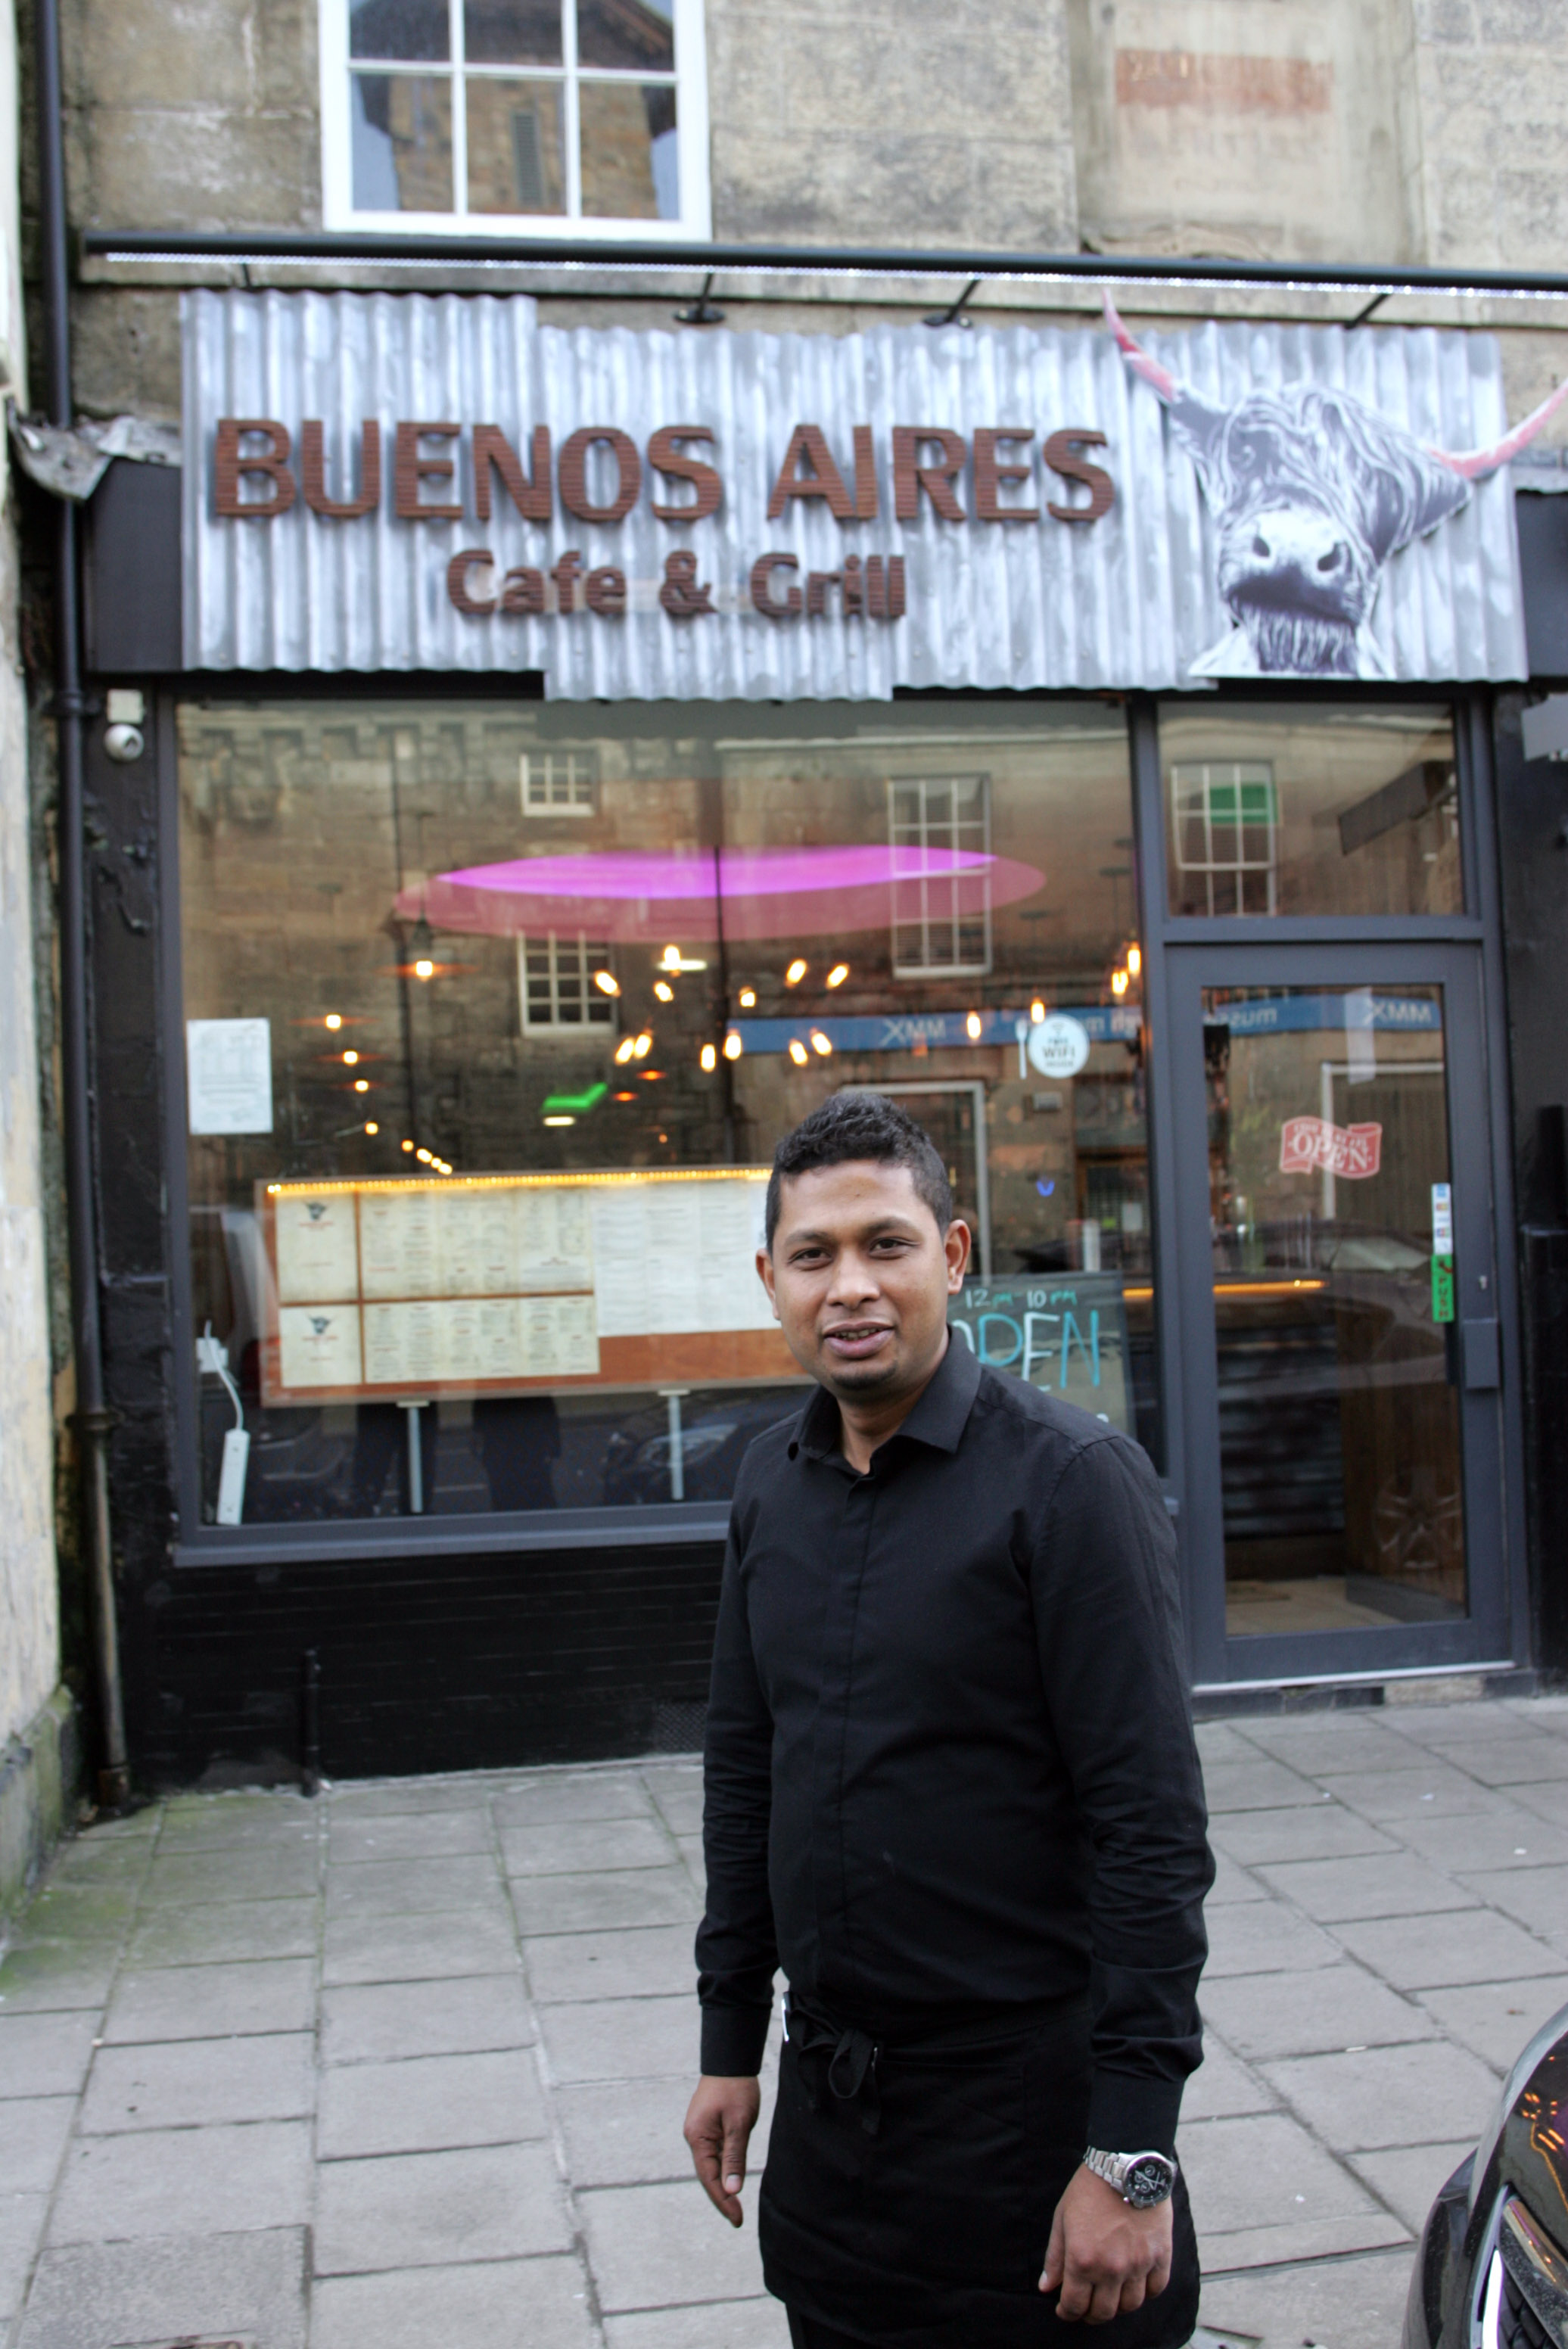 General manager Mohammad Nazim Ahmed outside Buenos Aires Cafe & Grill